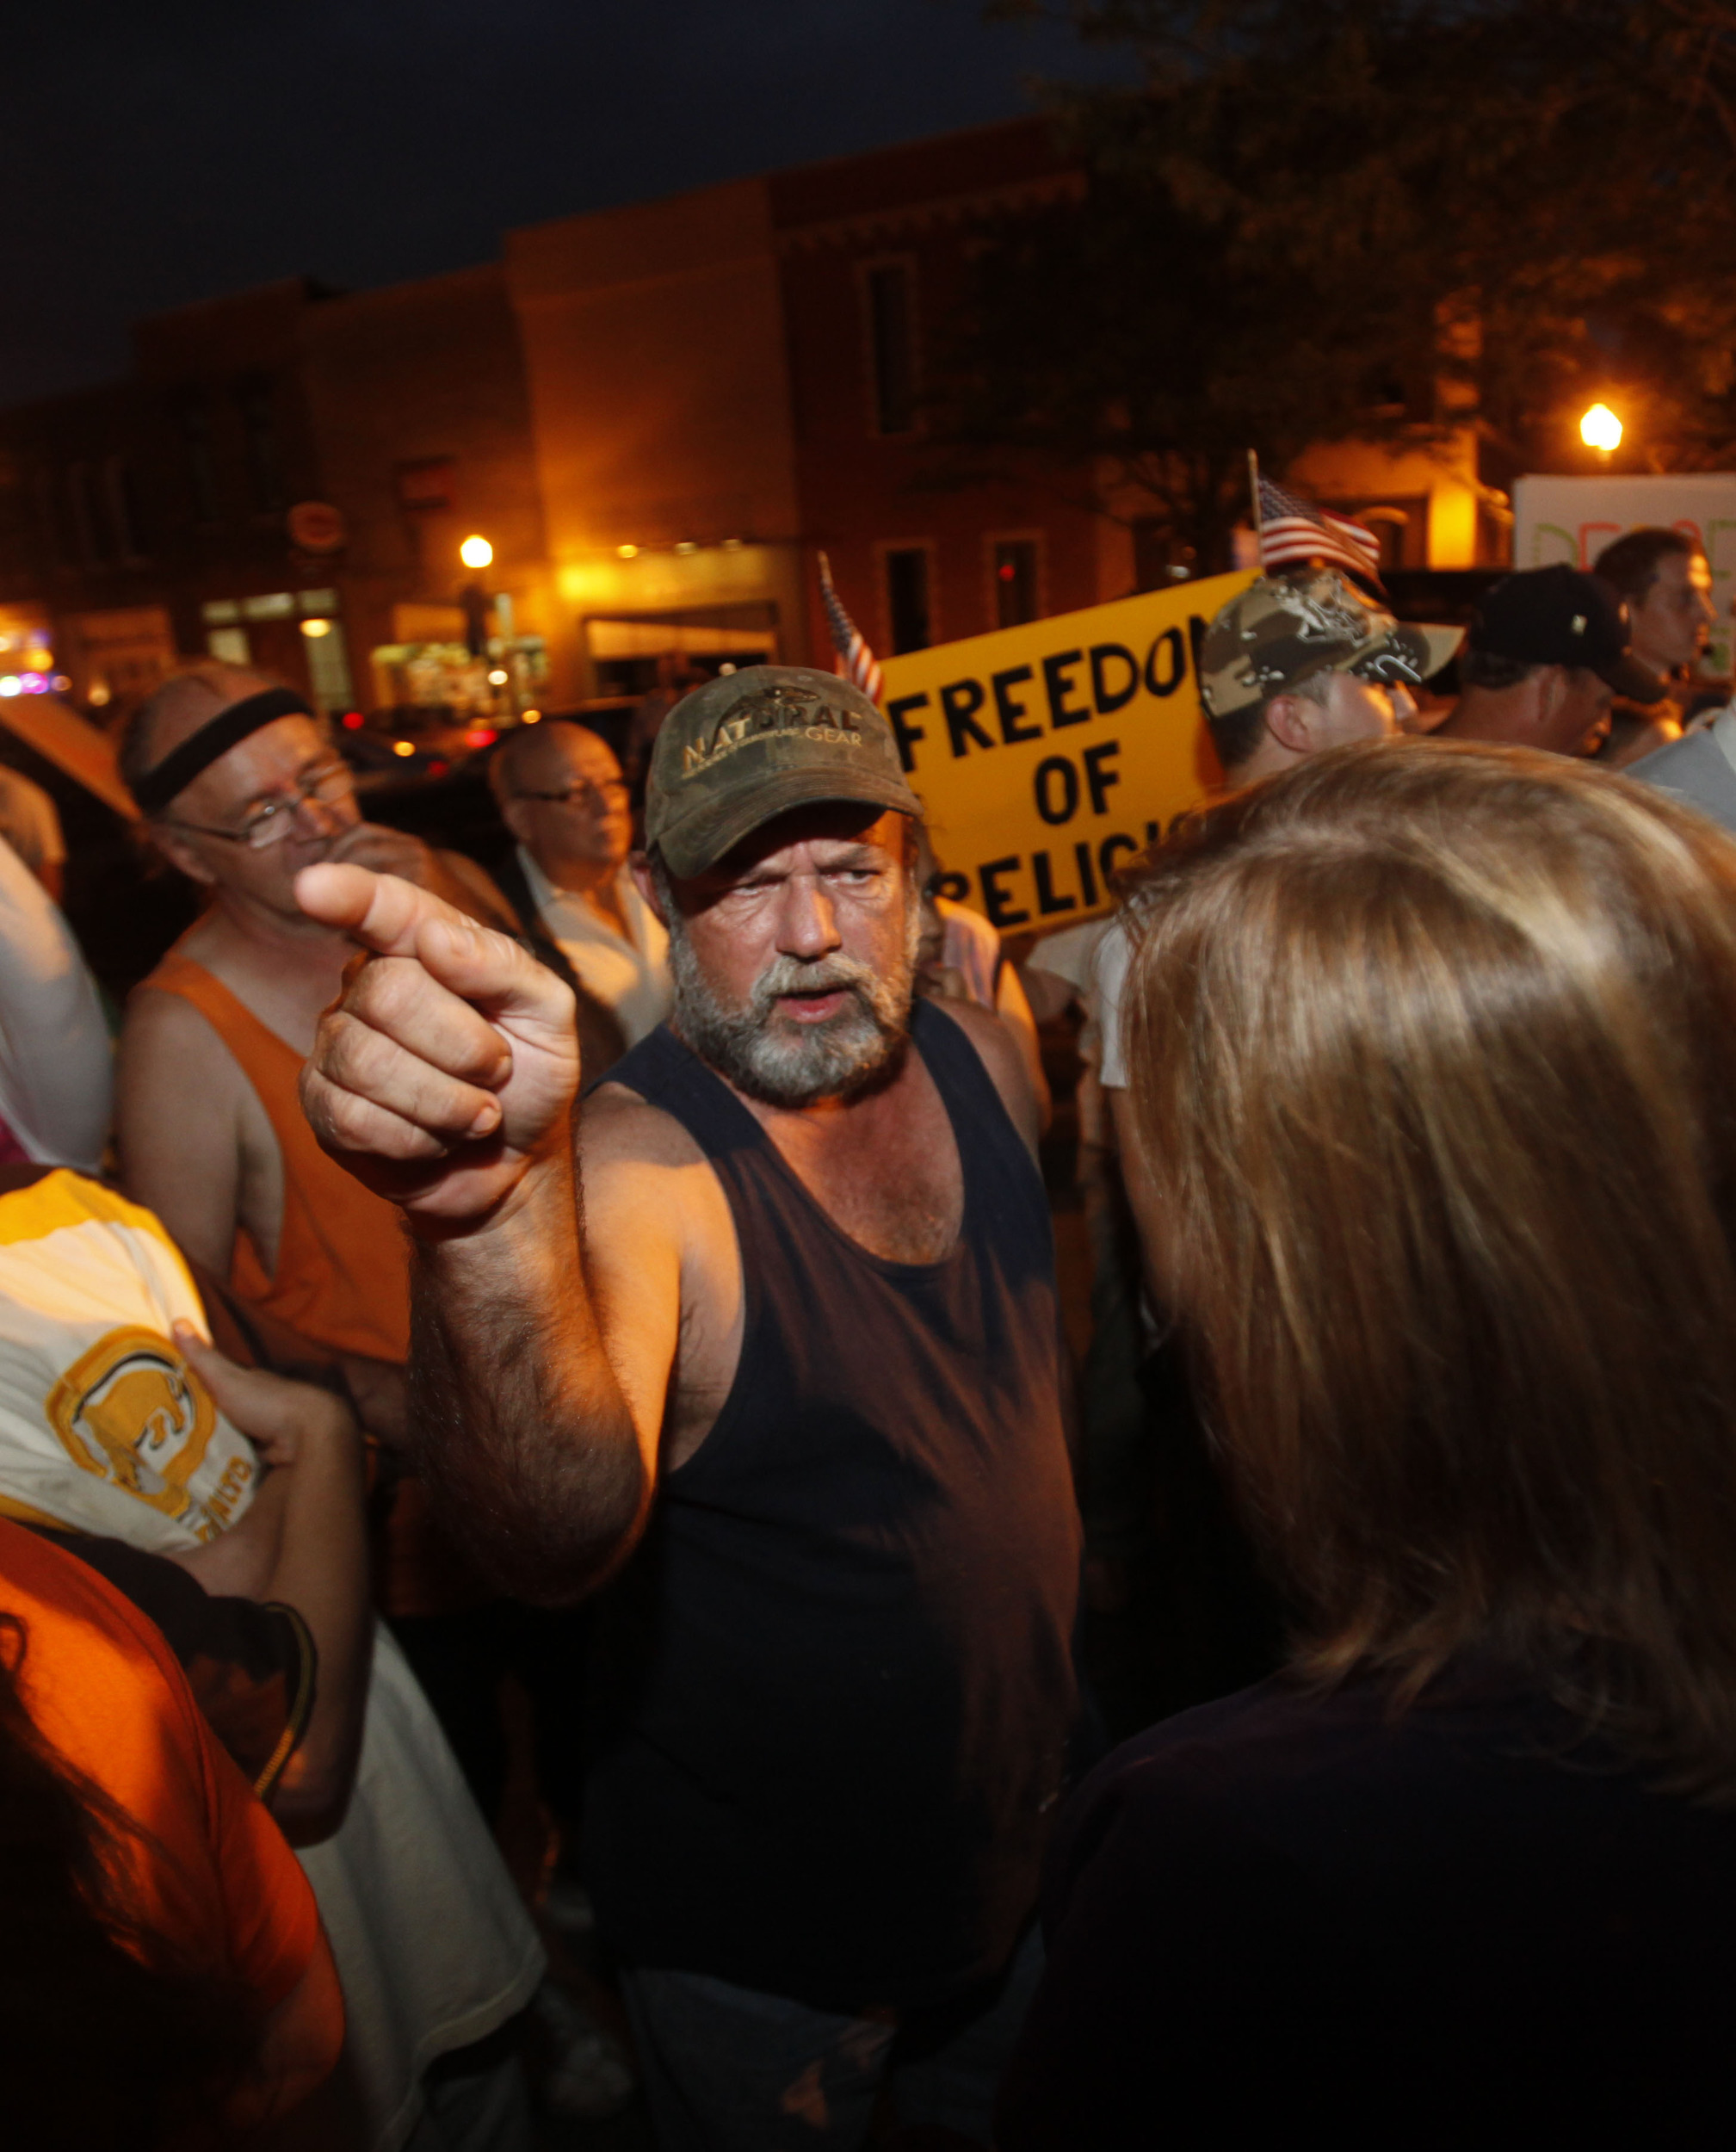 A protester argues against the proposed building of a mosque and community center in Murfreesboro, Tenn. A peace rally was held in support of the muslim community August 30, 2010 in public square.